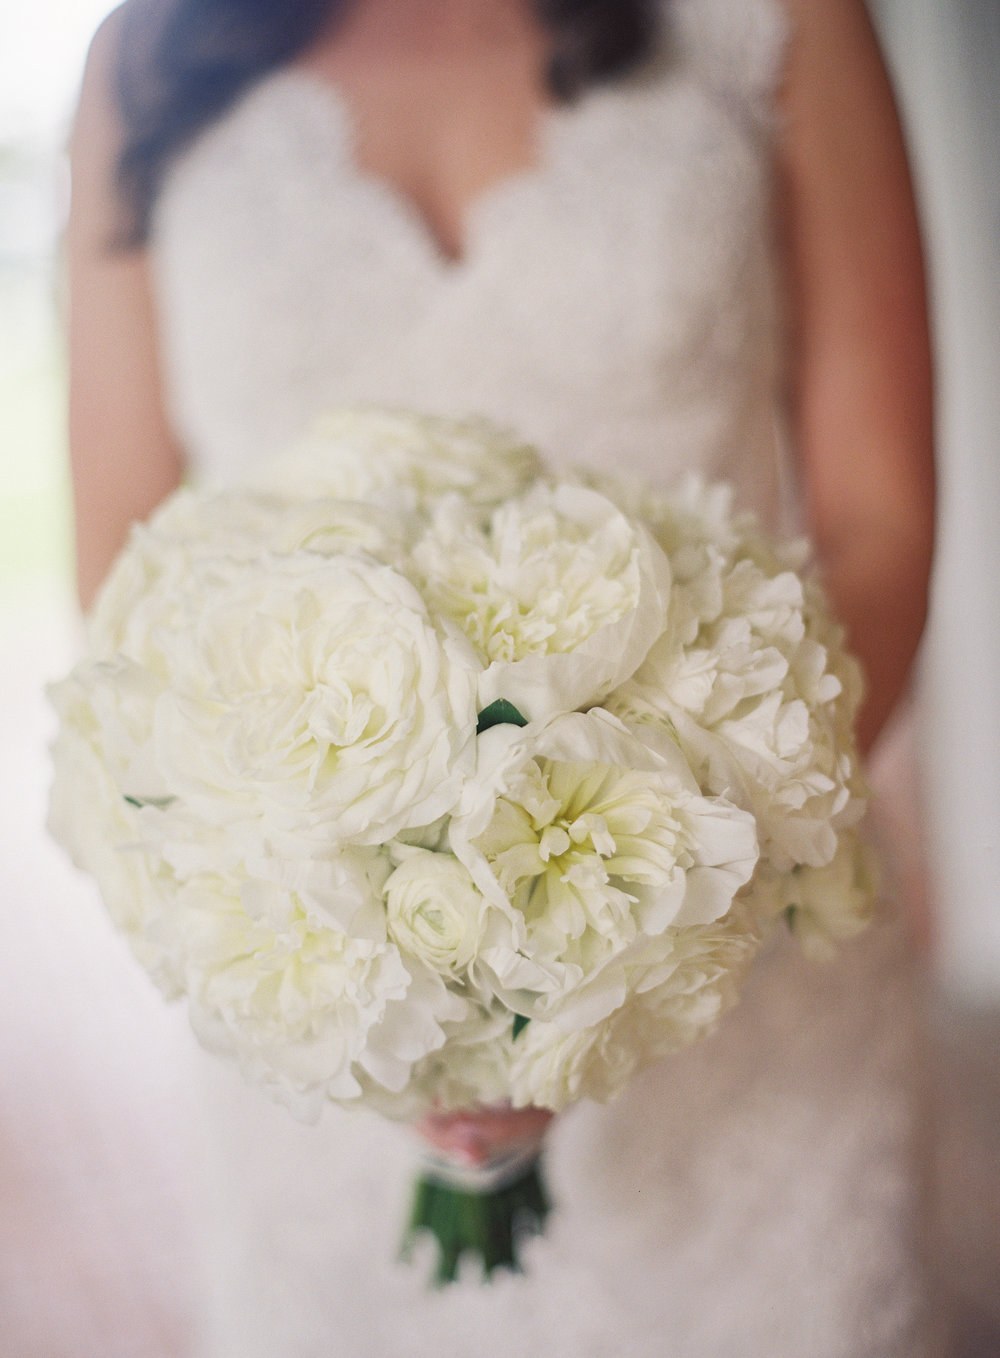 Sapphire Events | Catherine Guidry Photography | Wedding Planning | New Orleans Wedding | Stella Plantation Wedding | Blue and White Wedding | Classic Rainy Day Wedding | Outdoor Wedding | Tent Wedding | Hunter Boots | Blue and White Wedding Details | All white bridal bouquet